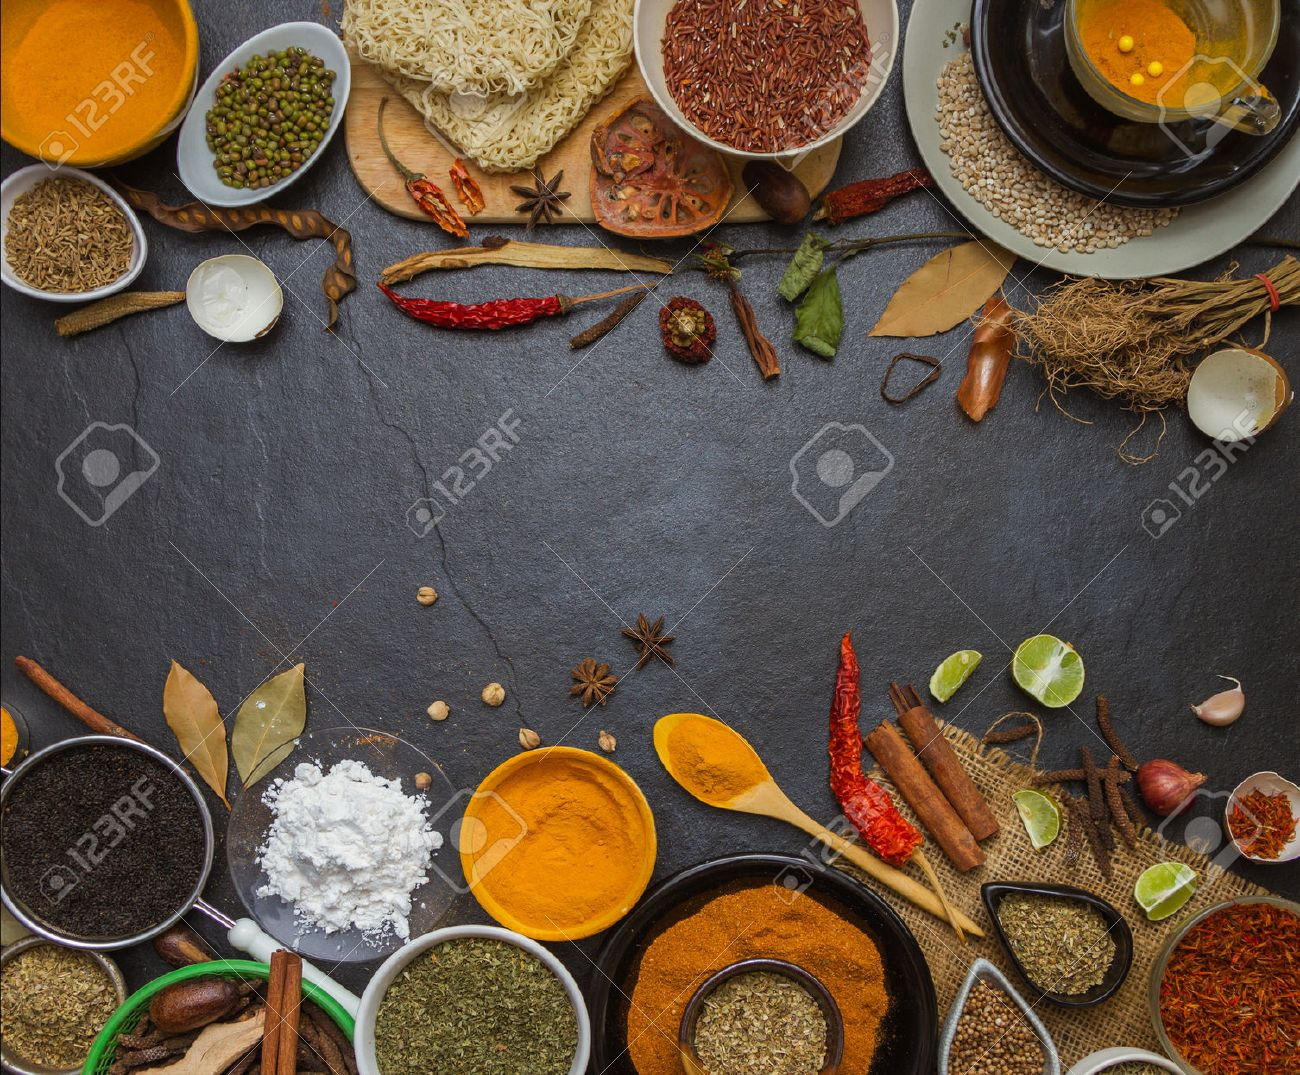 The spice and herb on stone background for design or decorate project. Stock Photo - 51301665